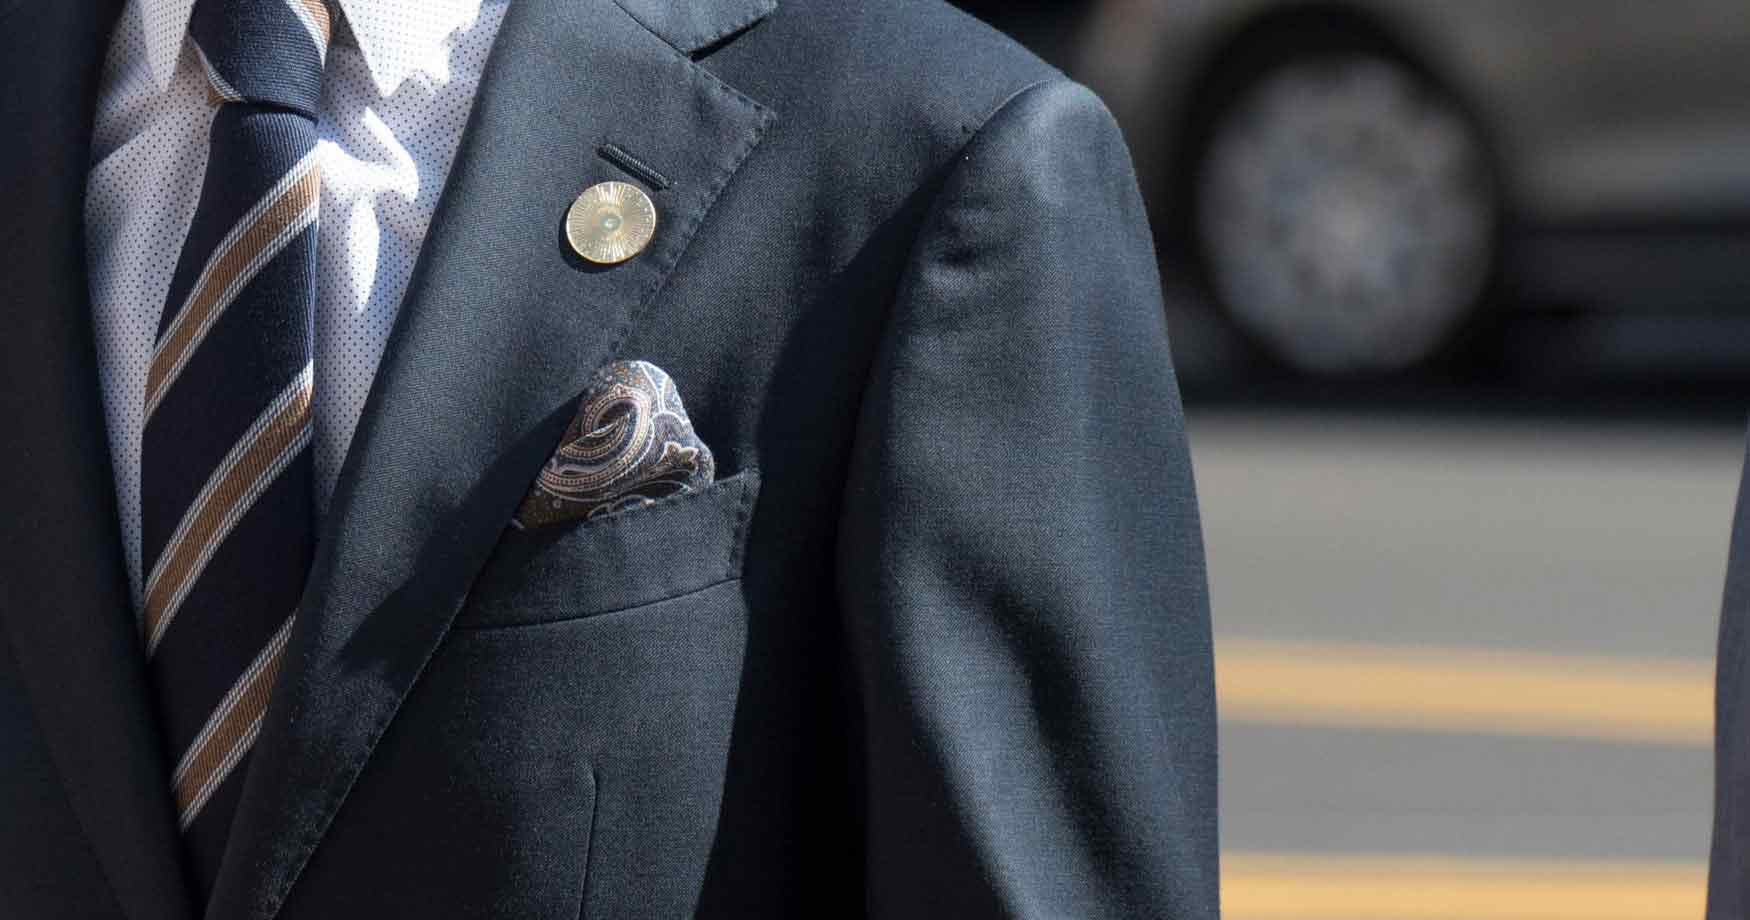 Watch - How to multiple wear lapel pins video